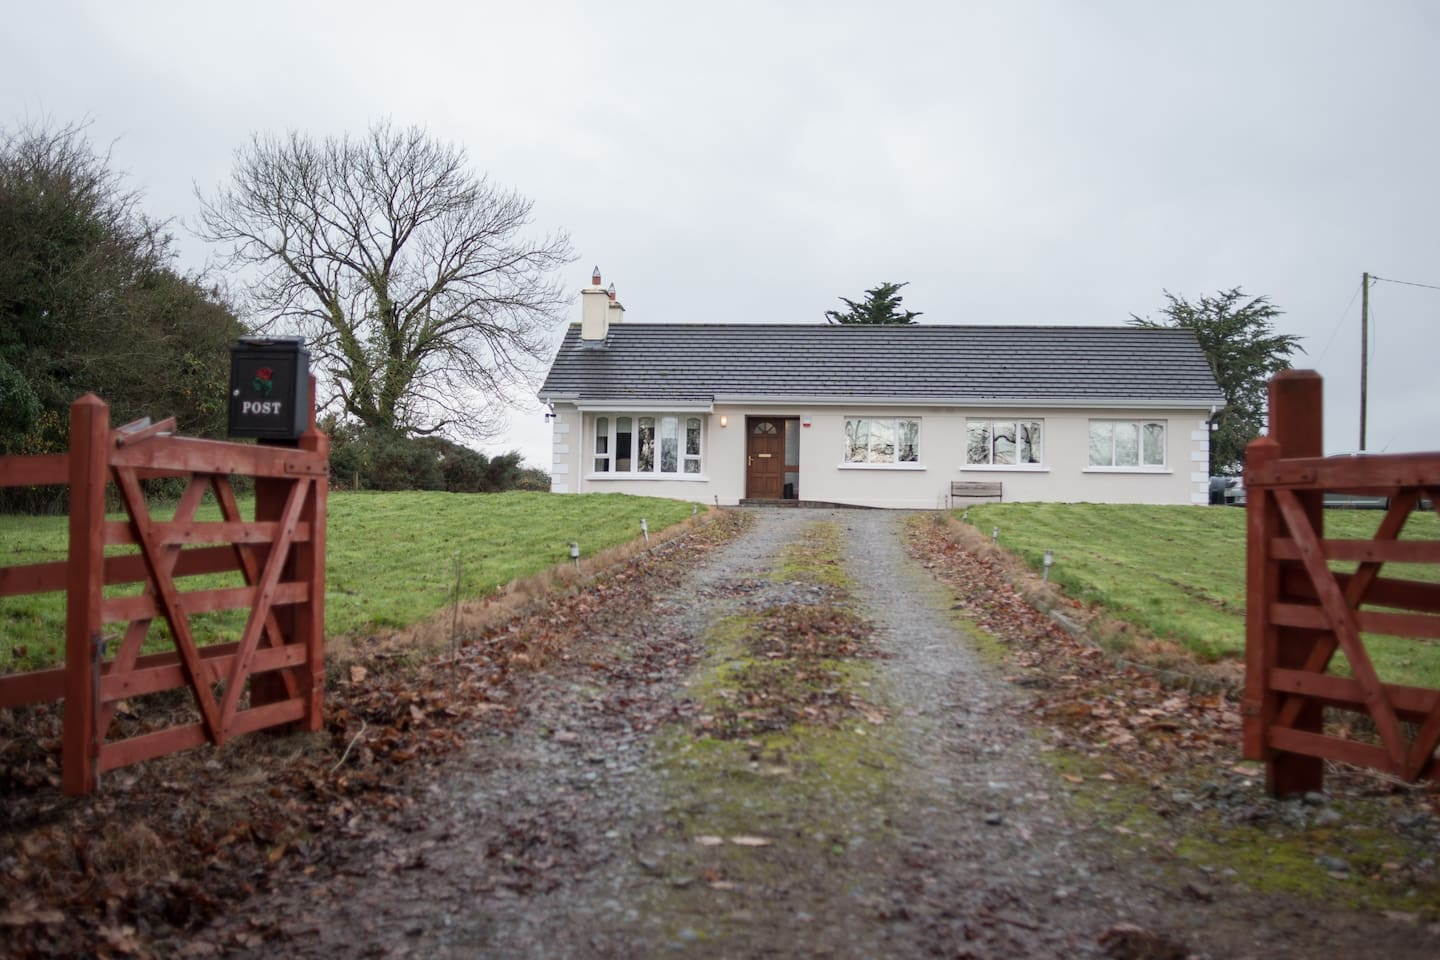 Homely bungalow, close to Cork Races, Mallow town and some wonderful Restaurants.